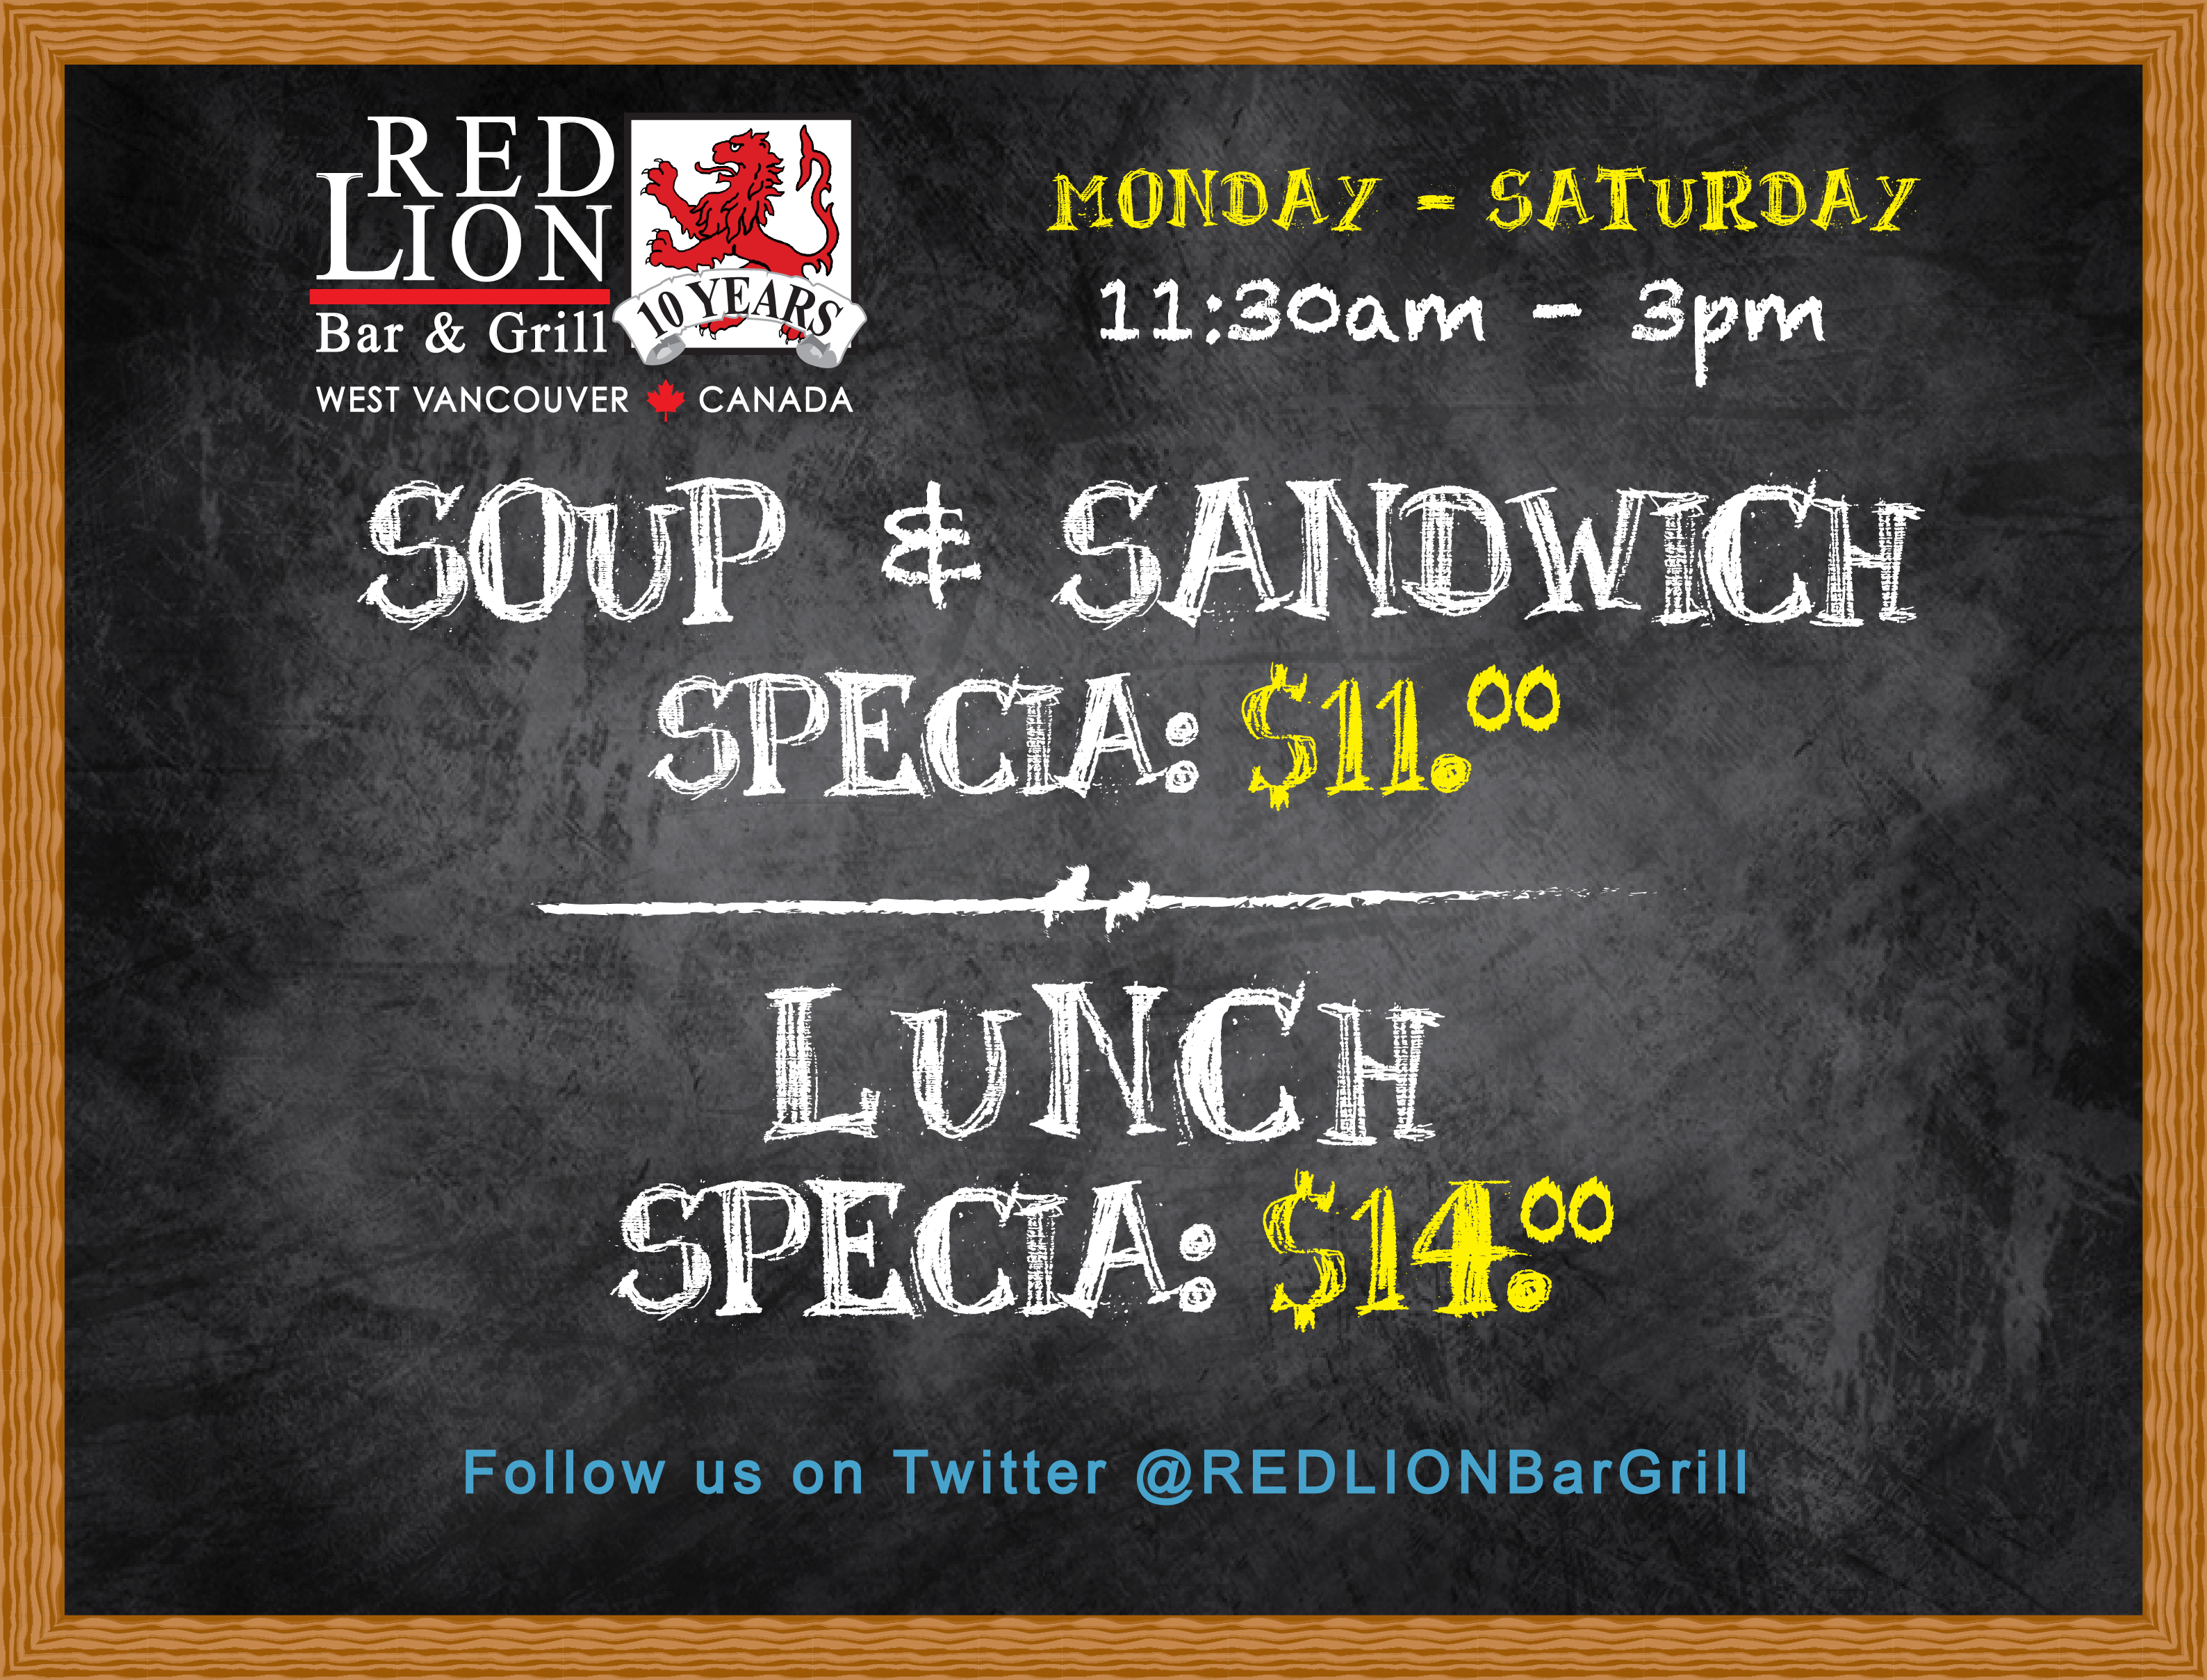 Lunch Specials